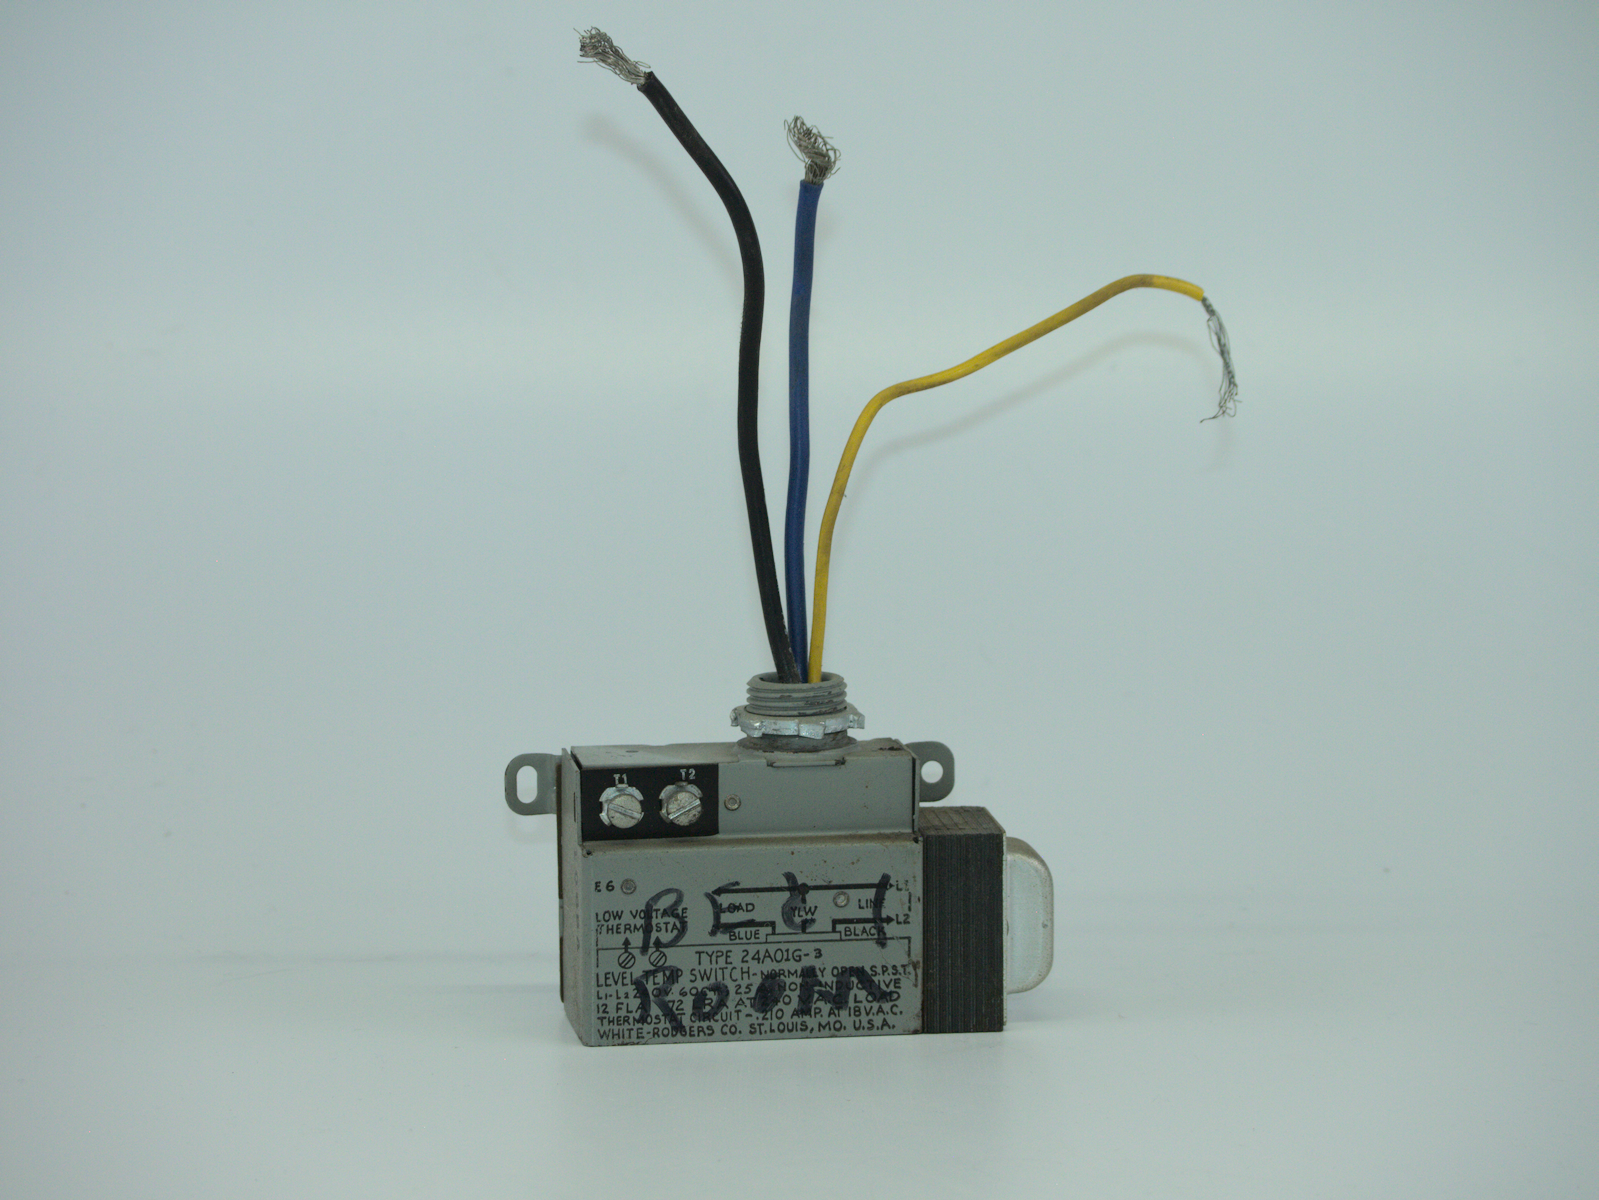 White-Rodgers Co. - 24A01G-3 Electric Heat Relay (240VAC) - Thermostat Circuit